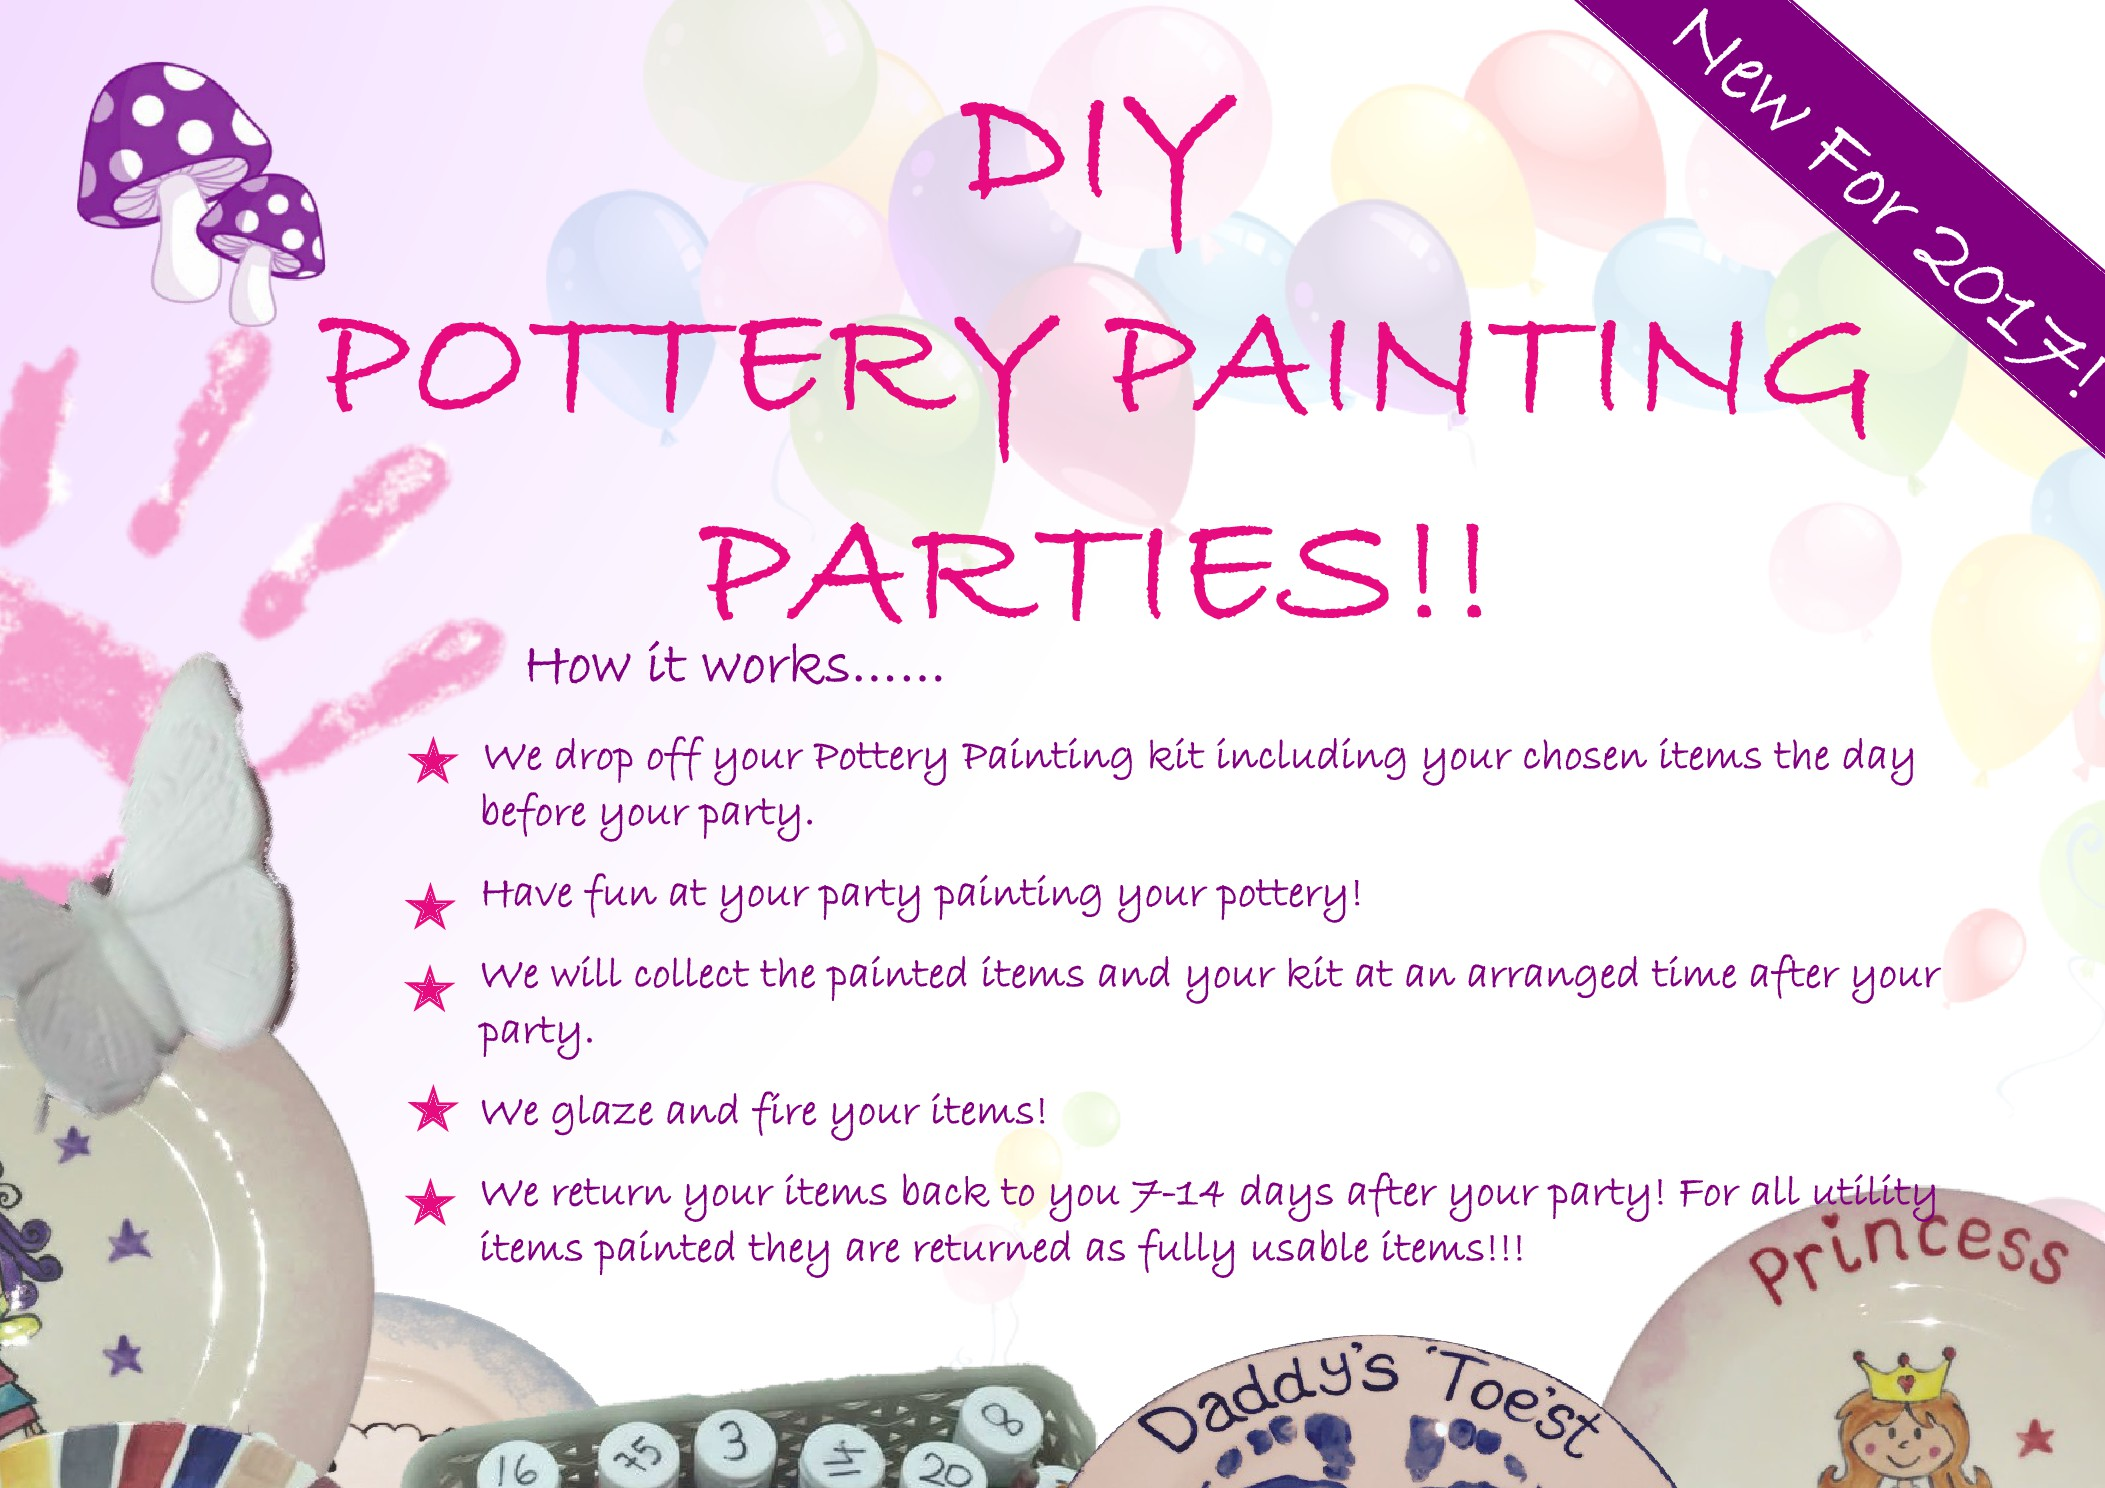 DIY Pottery Painting Parties - Kate Creative